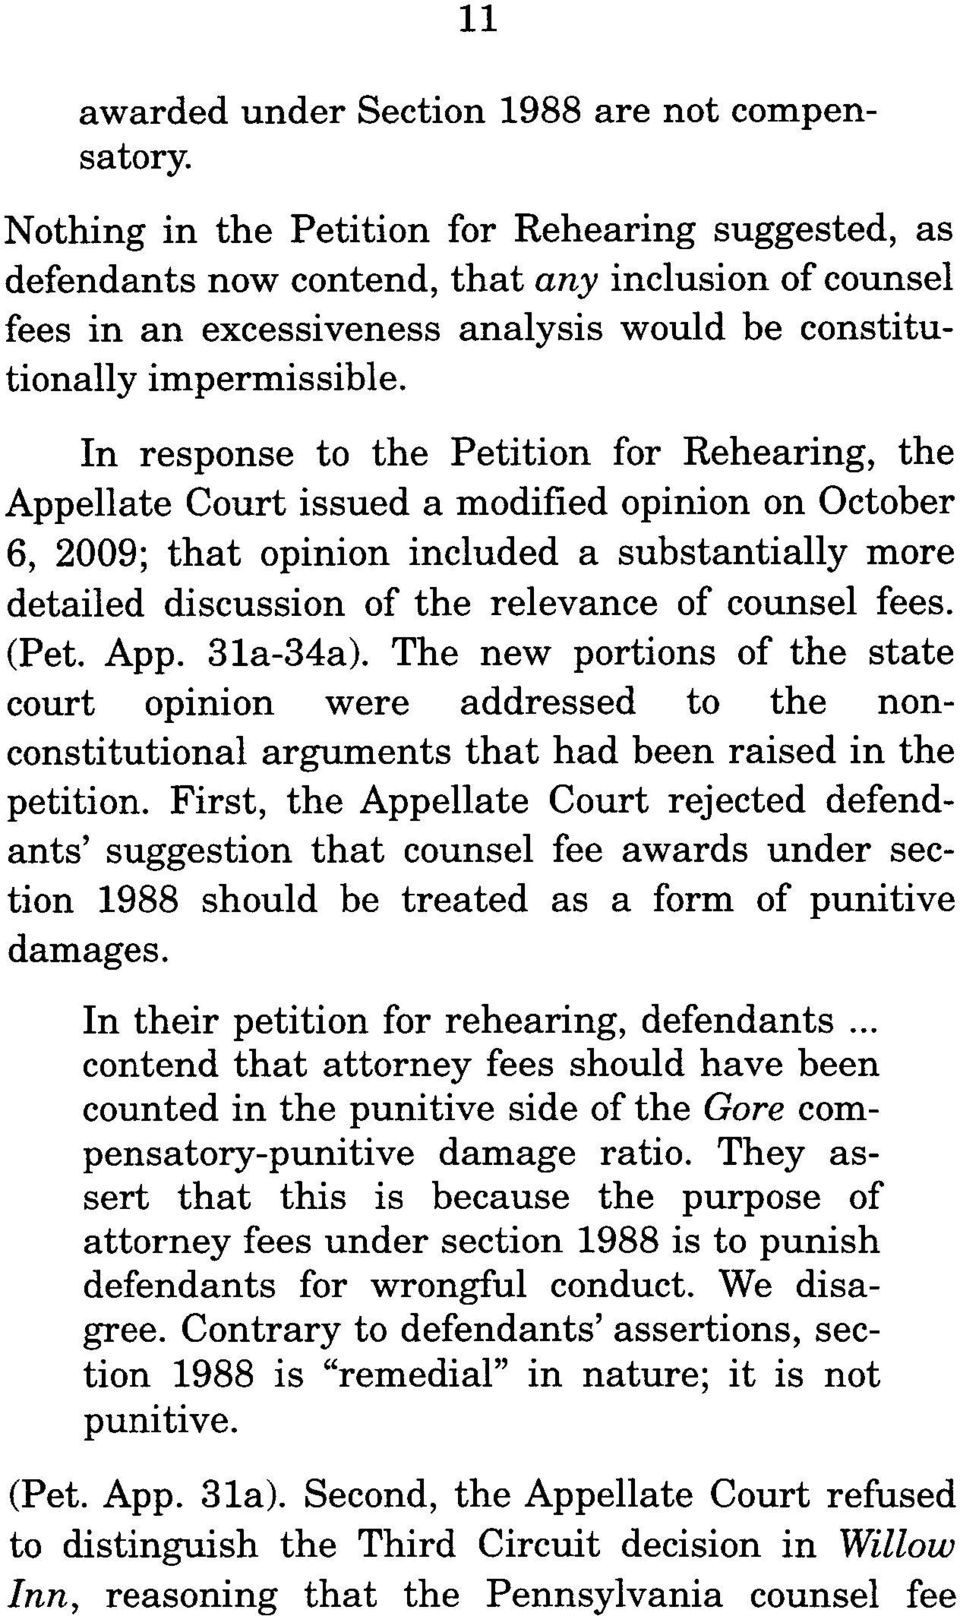 In response to the Petition for Rehearing, the Appellate Court issued a modified opinion on October 6, 2009; that opinion included a substantially more detailed discussion of the relevance of counsel